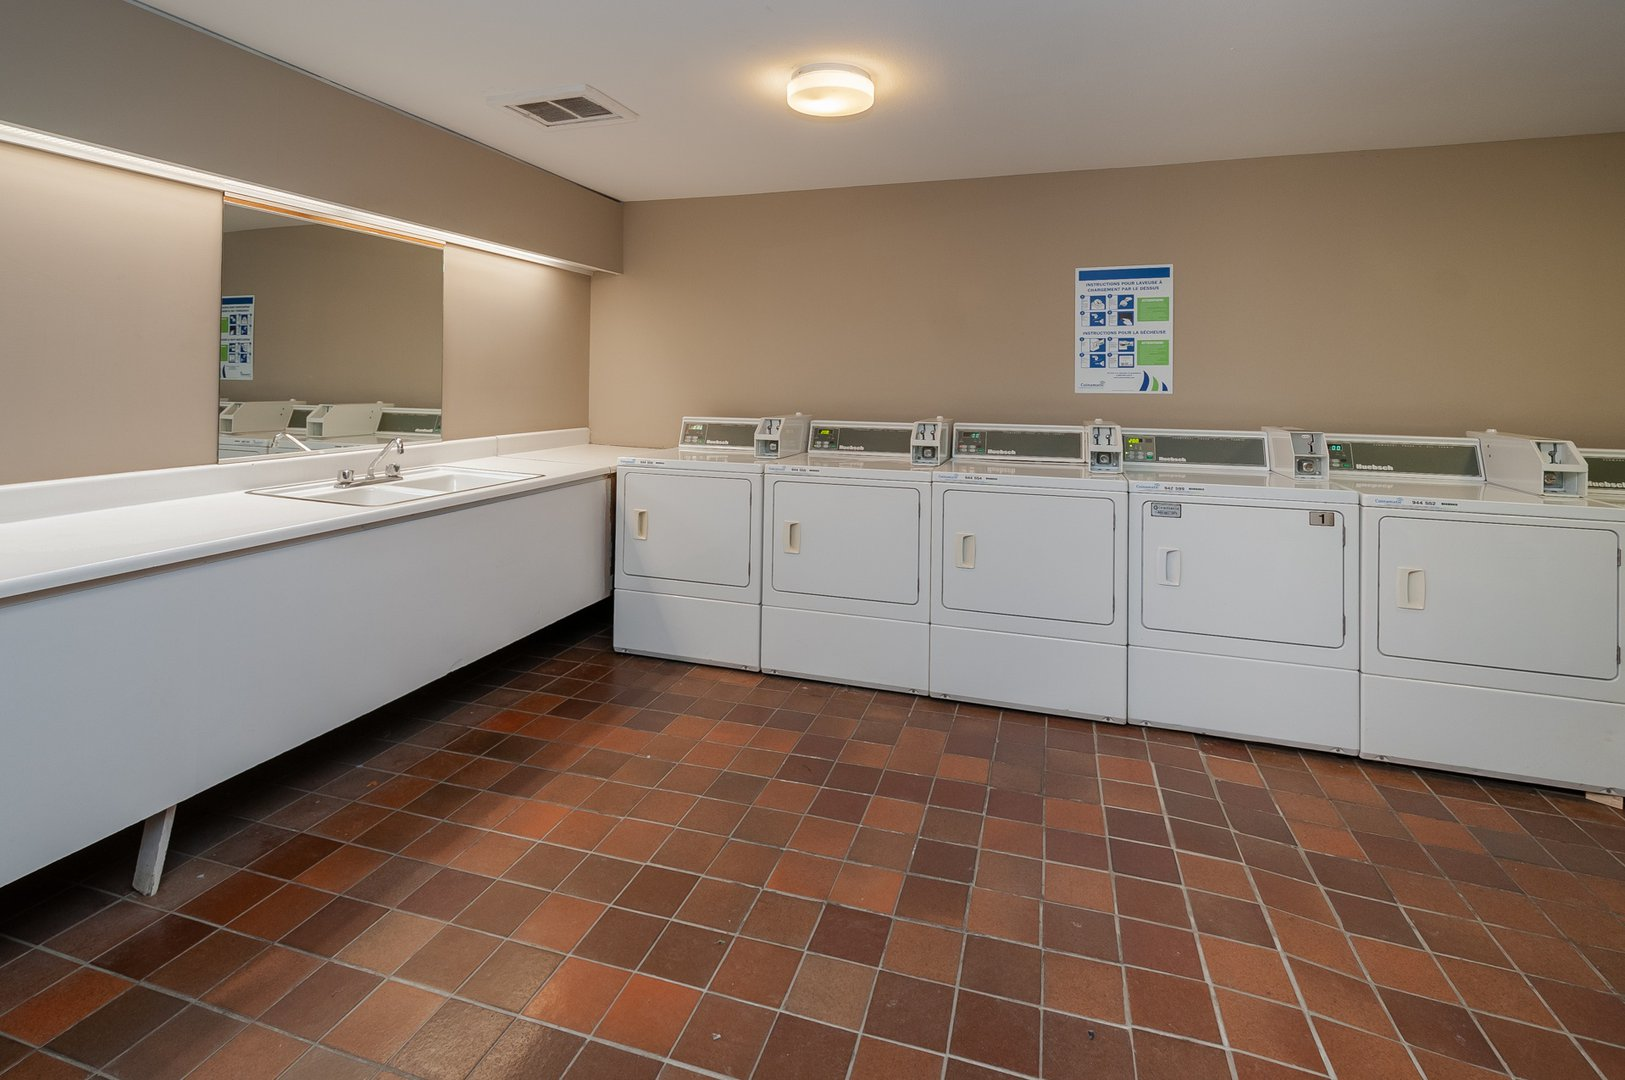 High-Rise Apartment for rent at 350 Chemin Sainte-Foy, bureau 1803, Québec City, QC. This is the laundry room with tile floor and natural light.